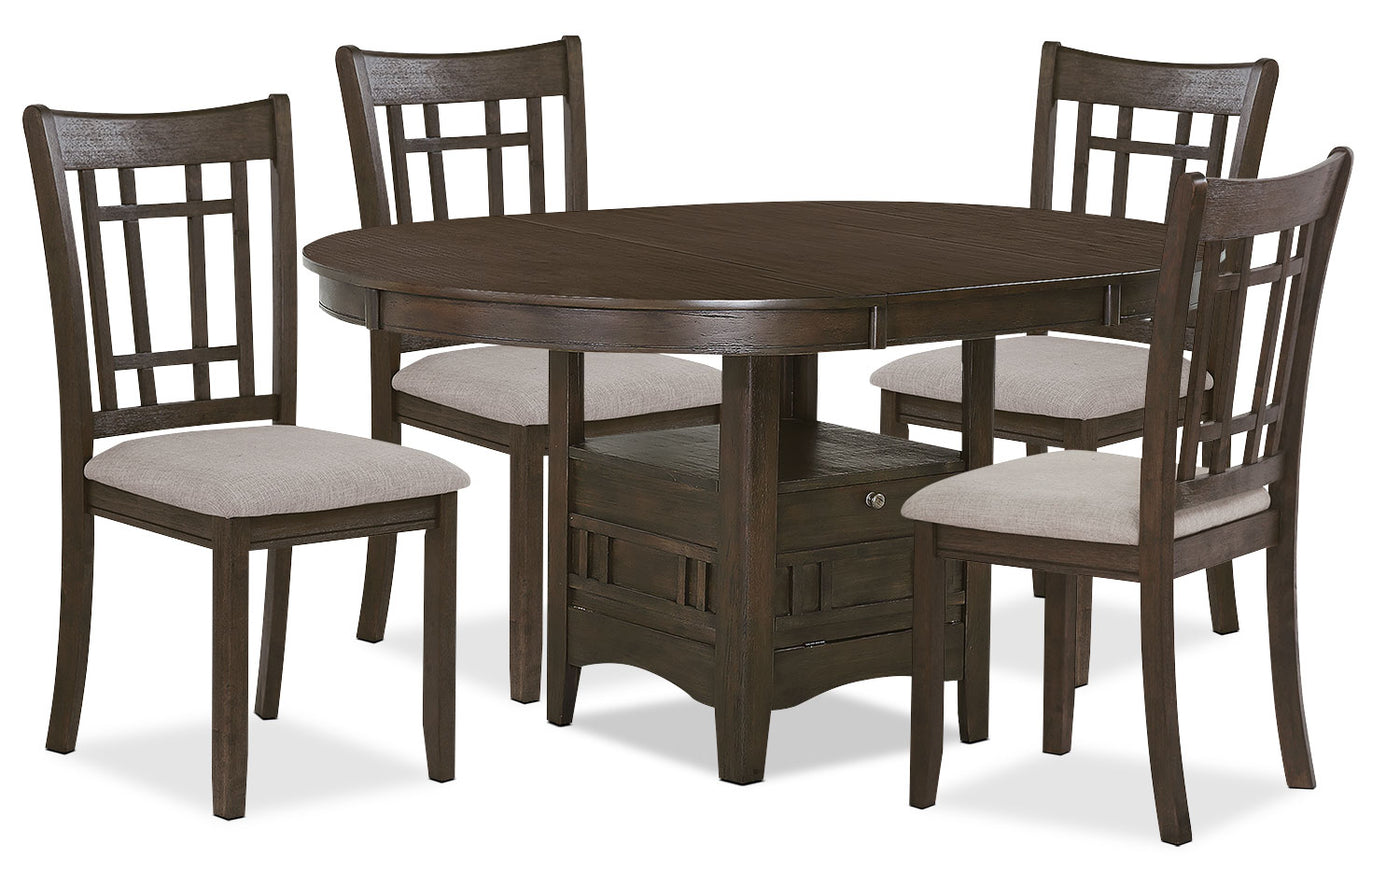 Marvelous Desi 5 Piece Dining Package Brown Onthecornerstone Fun Painted Chair Ideas Images Onthecornerstoneorg